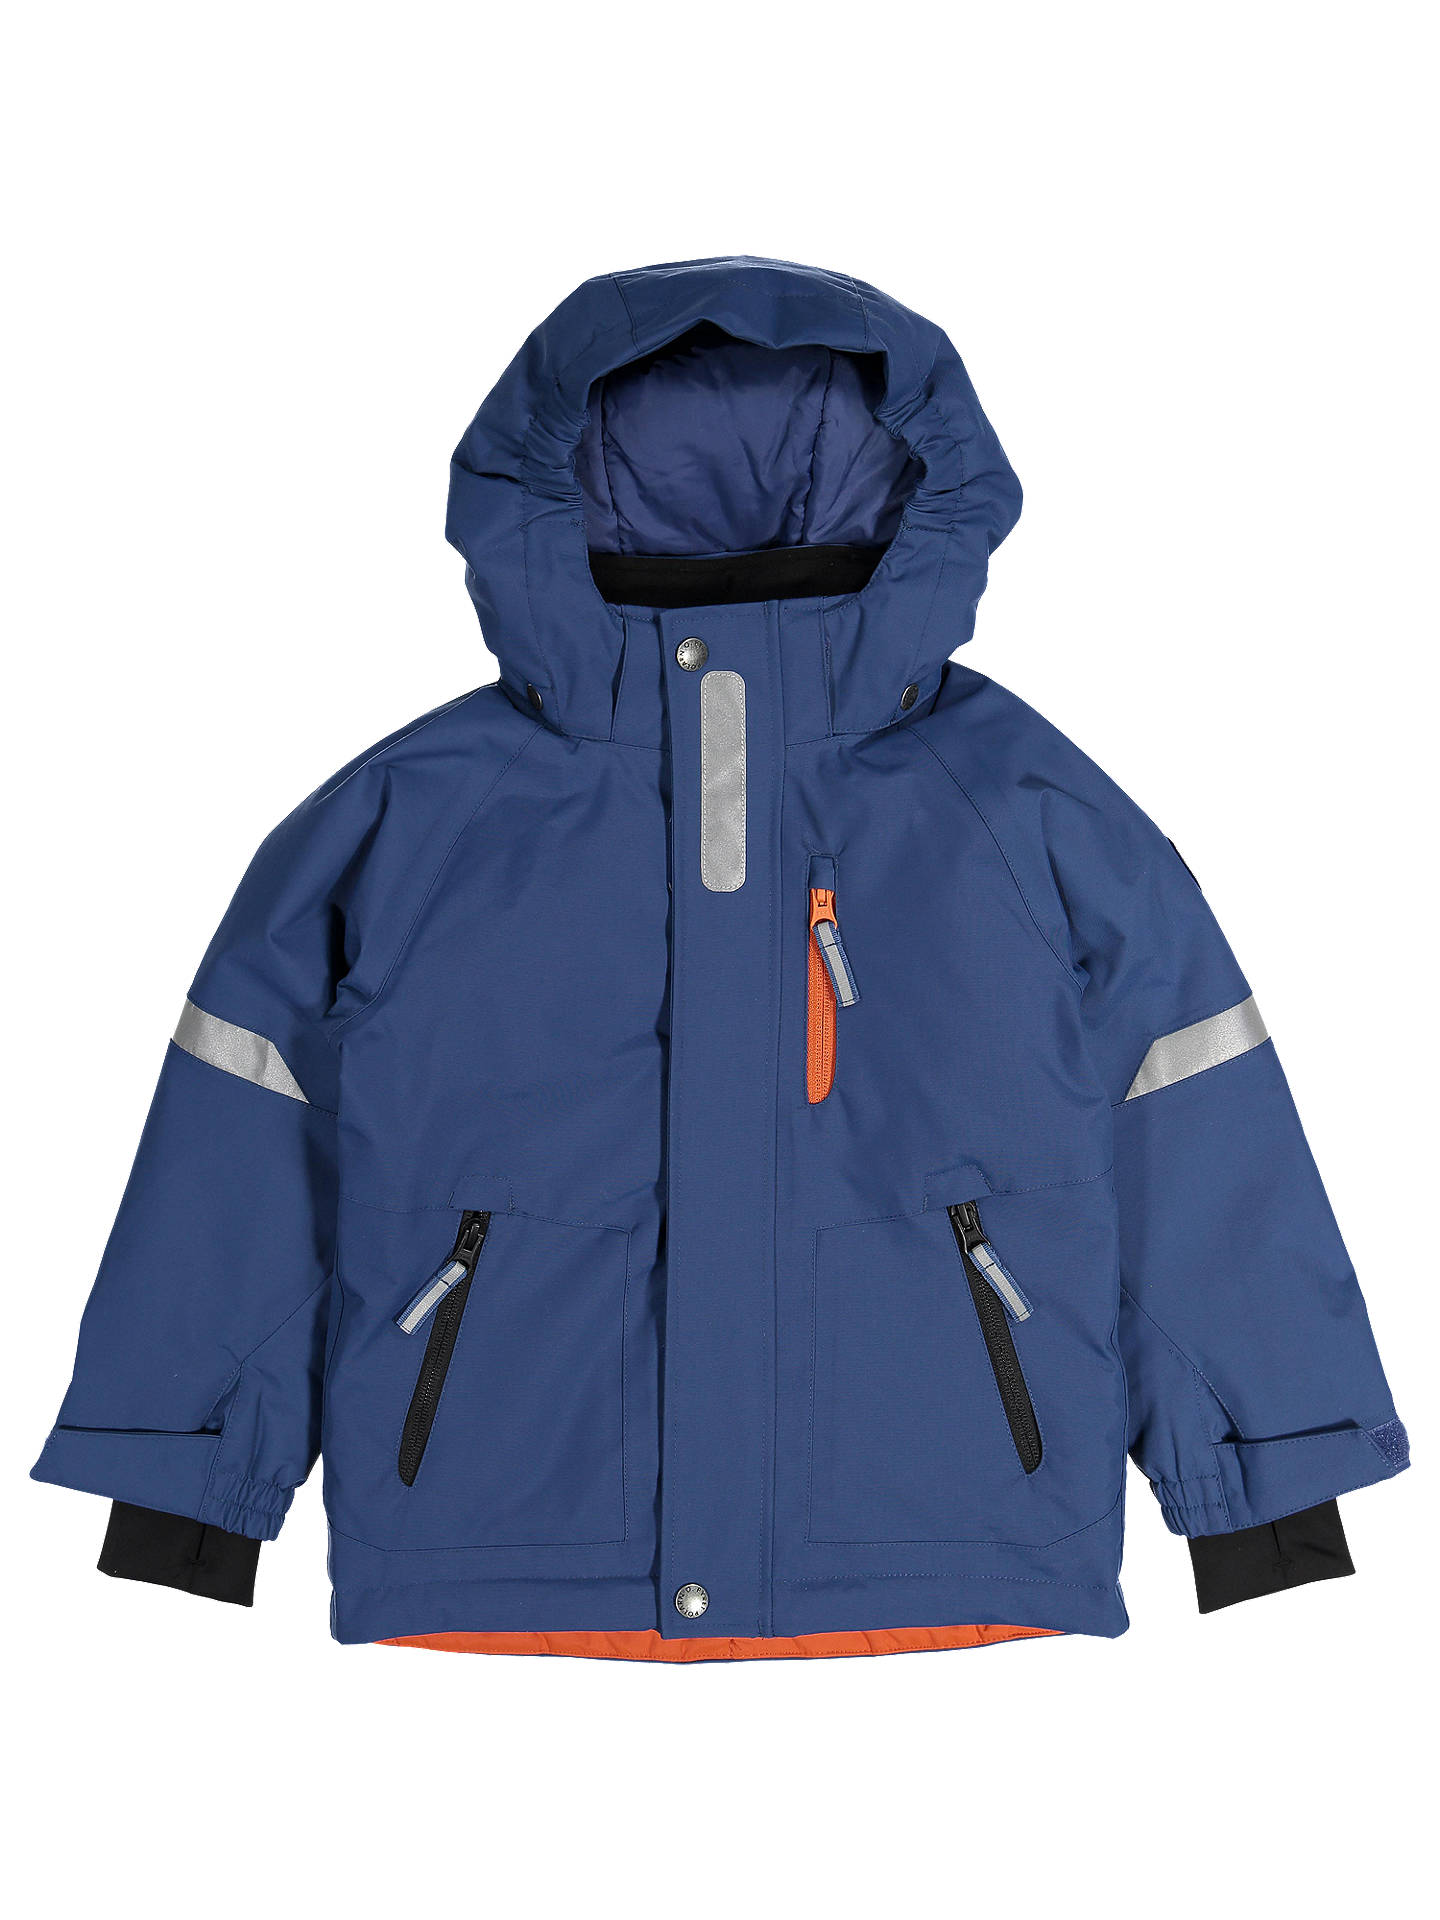 5f3aac3f7 Polarn O. Pyret Children s Waterproof Padded Jacket